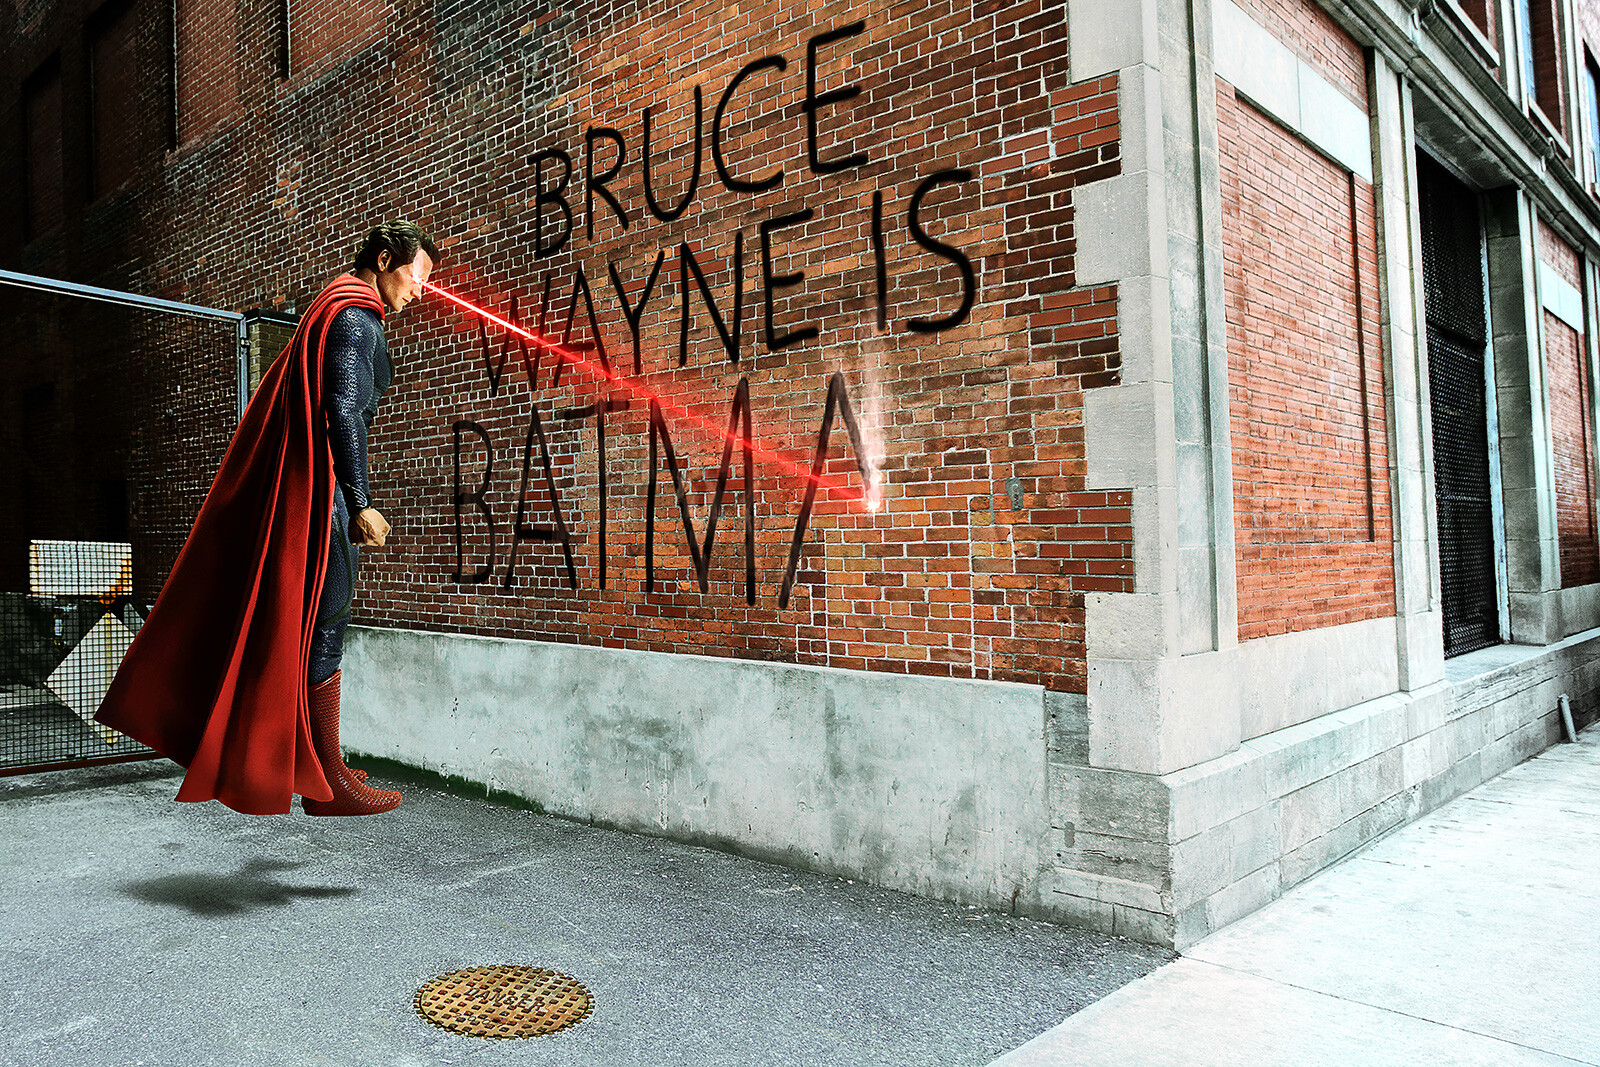 bruce wayne graffiti von daniel picard lumas. Black Bedroom Furniture Sets. Home Design Ideas